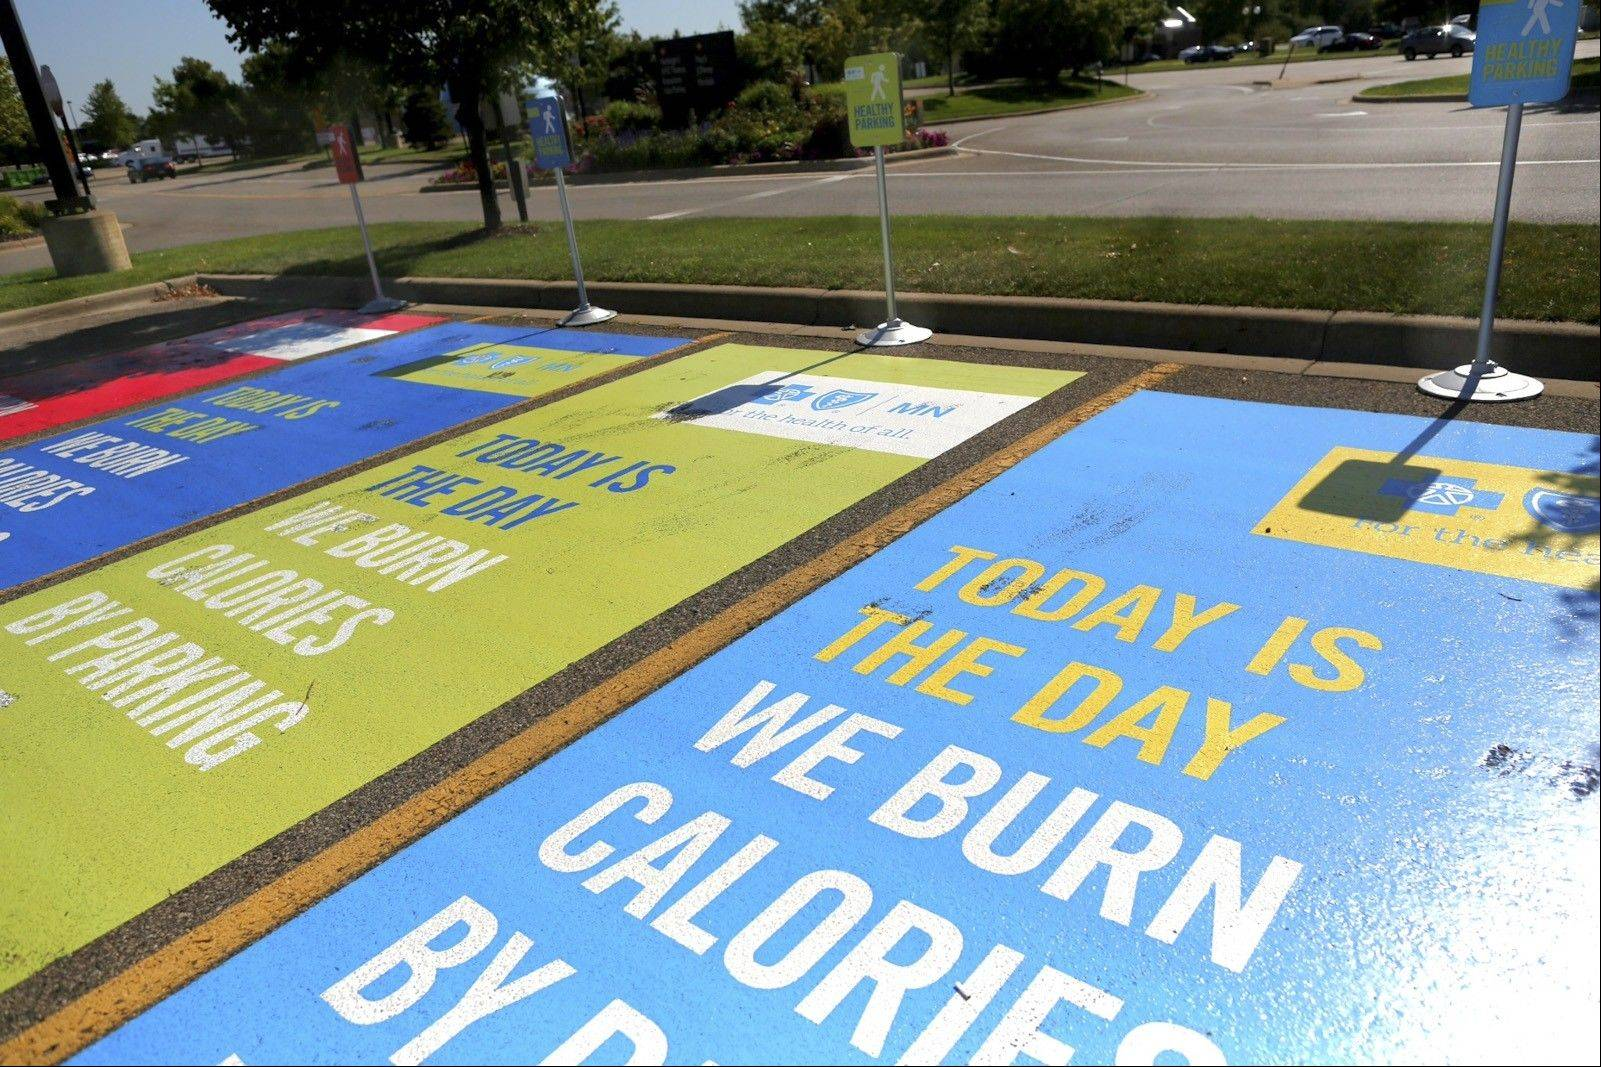 SHNS PHOTO BY RENEE JONES SCHNEIDER/MINNEAPOLIS STAR TRIBUNE Blue Cross and Blue Shield of Minnesota is campaigning to get mall shoppers to park farther away to increase exercise.